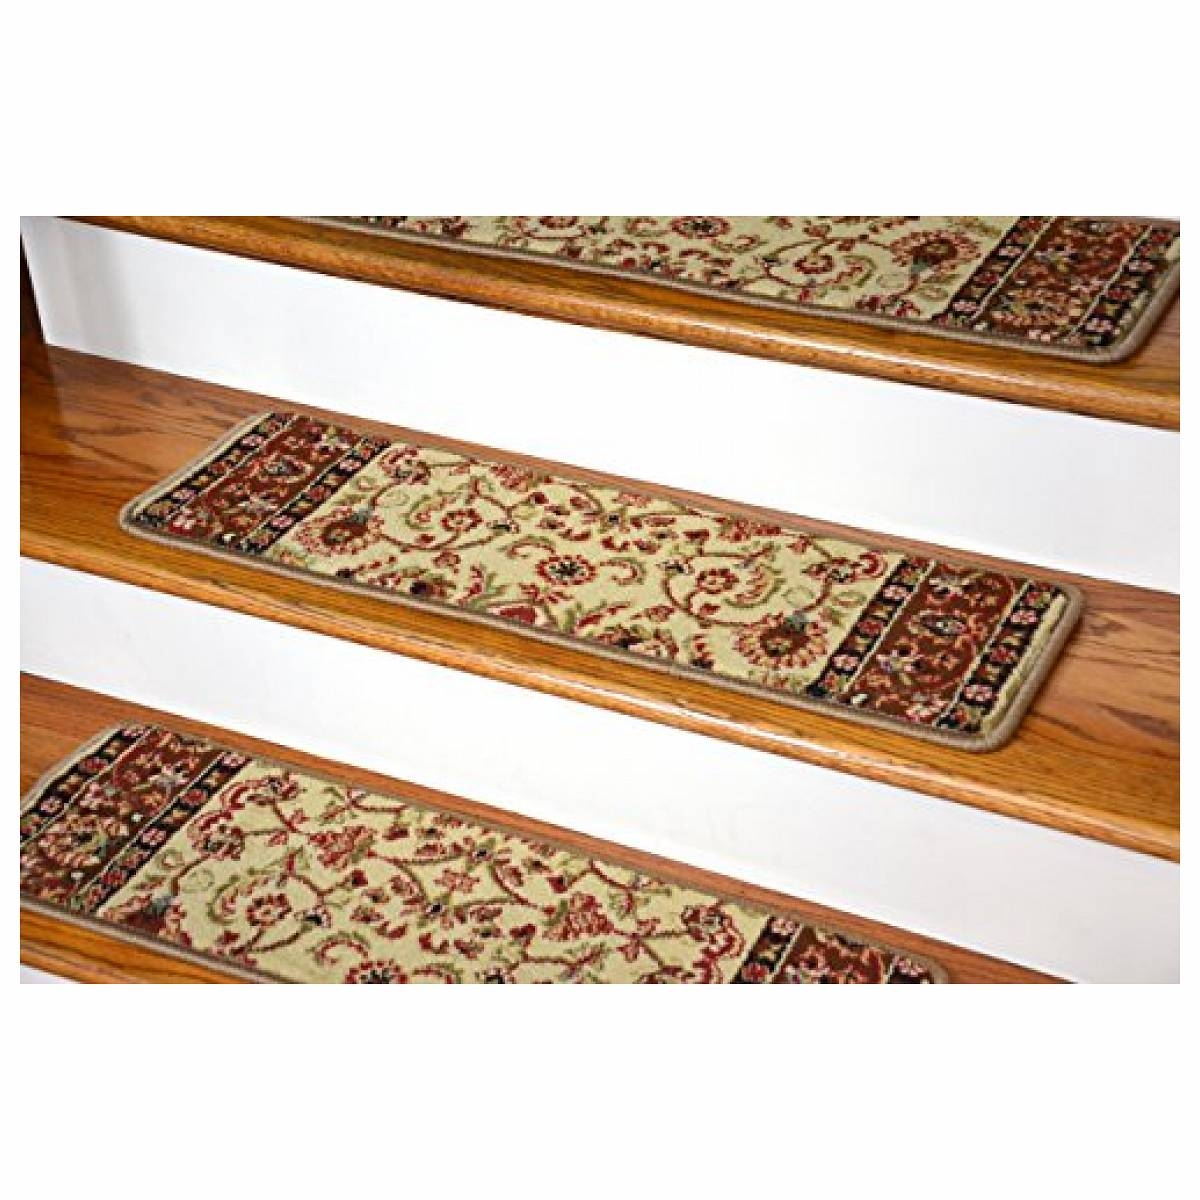 Stair Treads Carpet Free Brown Aqua Shield Boxwood Stair Tread With Regard To Stair Tread Rugs For Dogs (View 14 of 20)